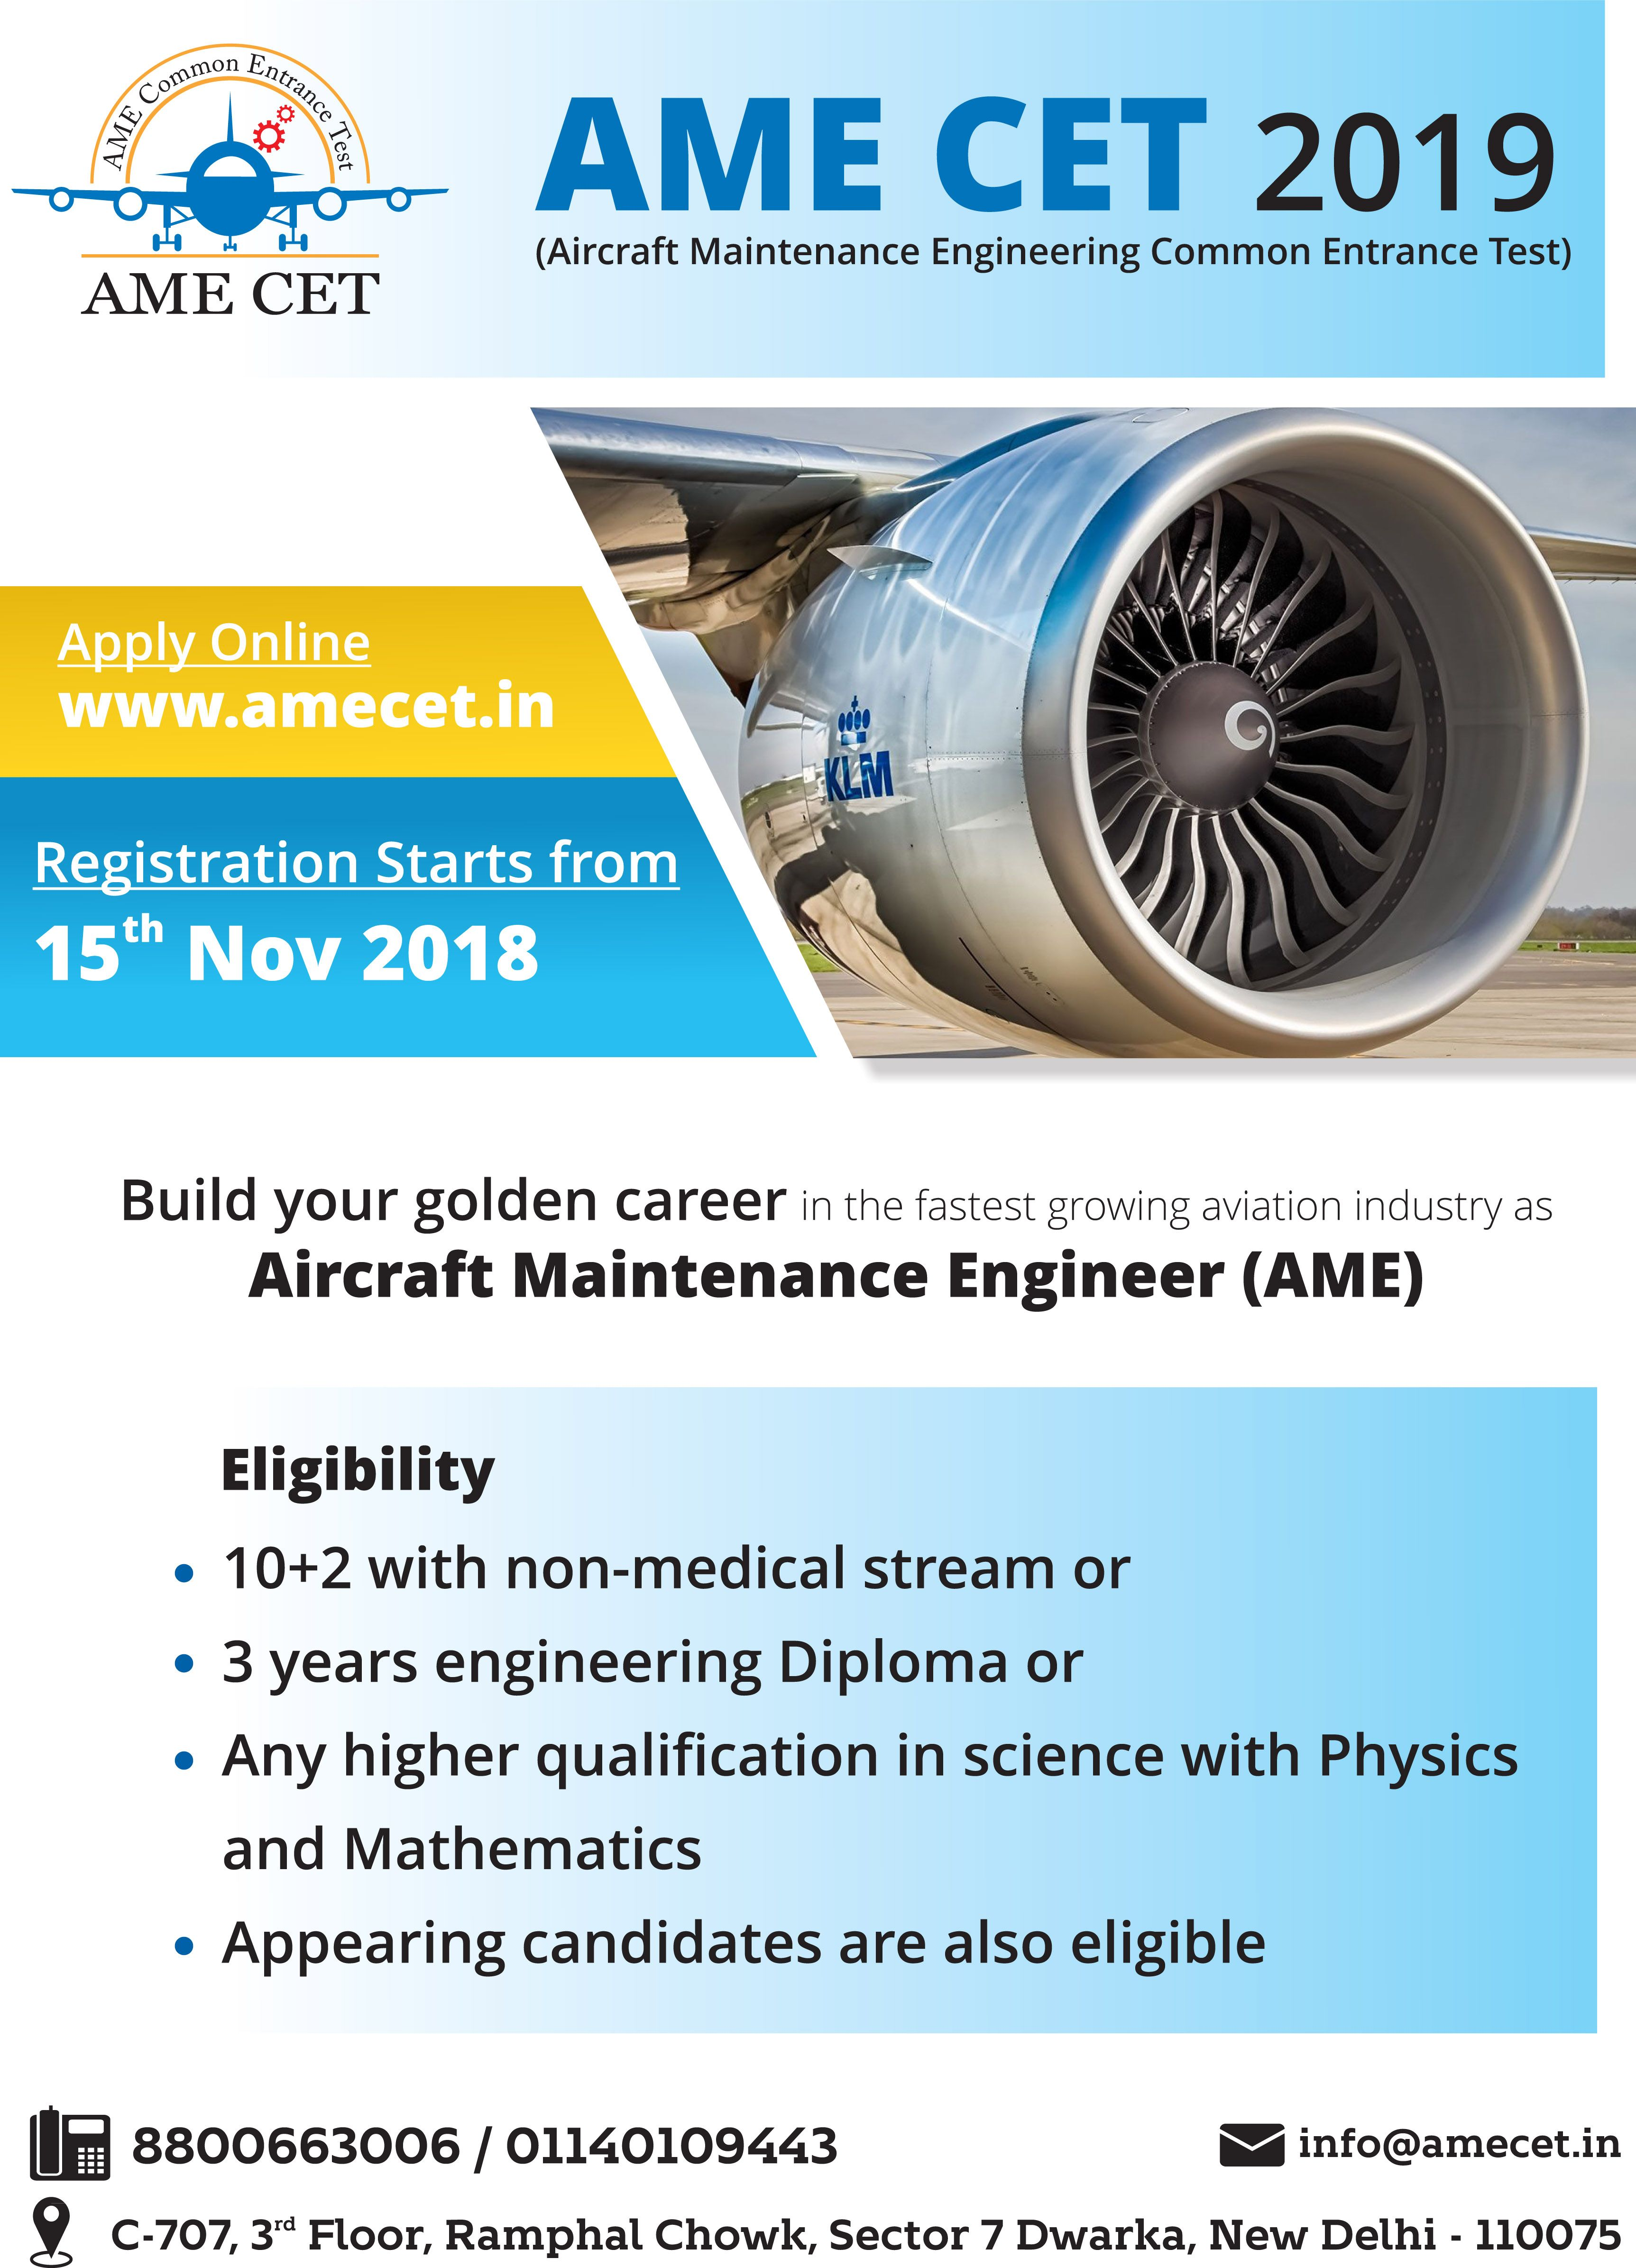 Aircraft Maintenance Engineering (AME) is License program